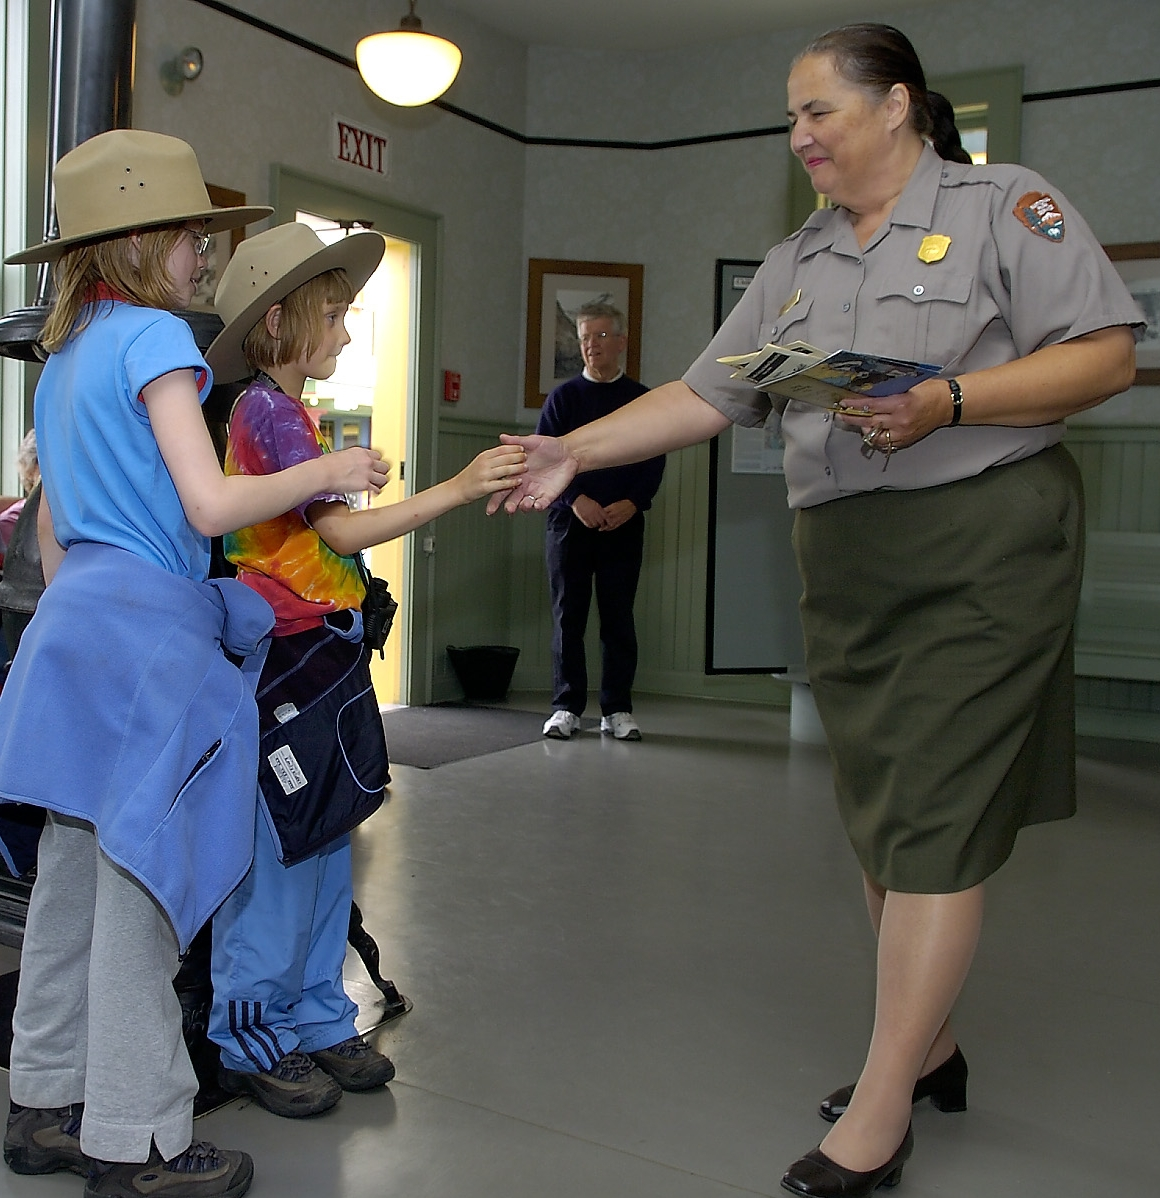 Our daughters, then 8 and 10 years old enjoyed earning Jr Ranger status at Klondike Historic National Park in Skagway in 2005. Look at that earnest little 8 YO face…wouldn't you take her back to Alaska if she missed something important!?